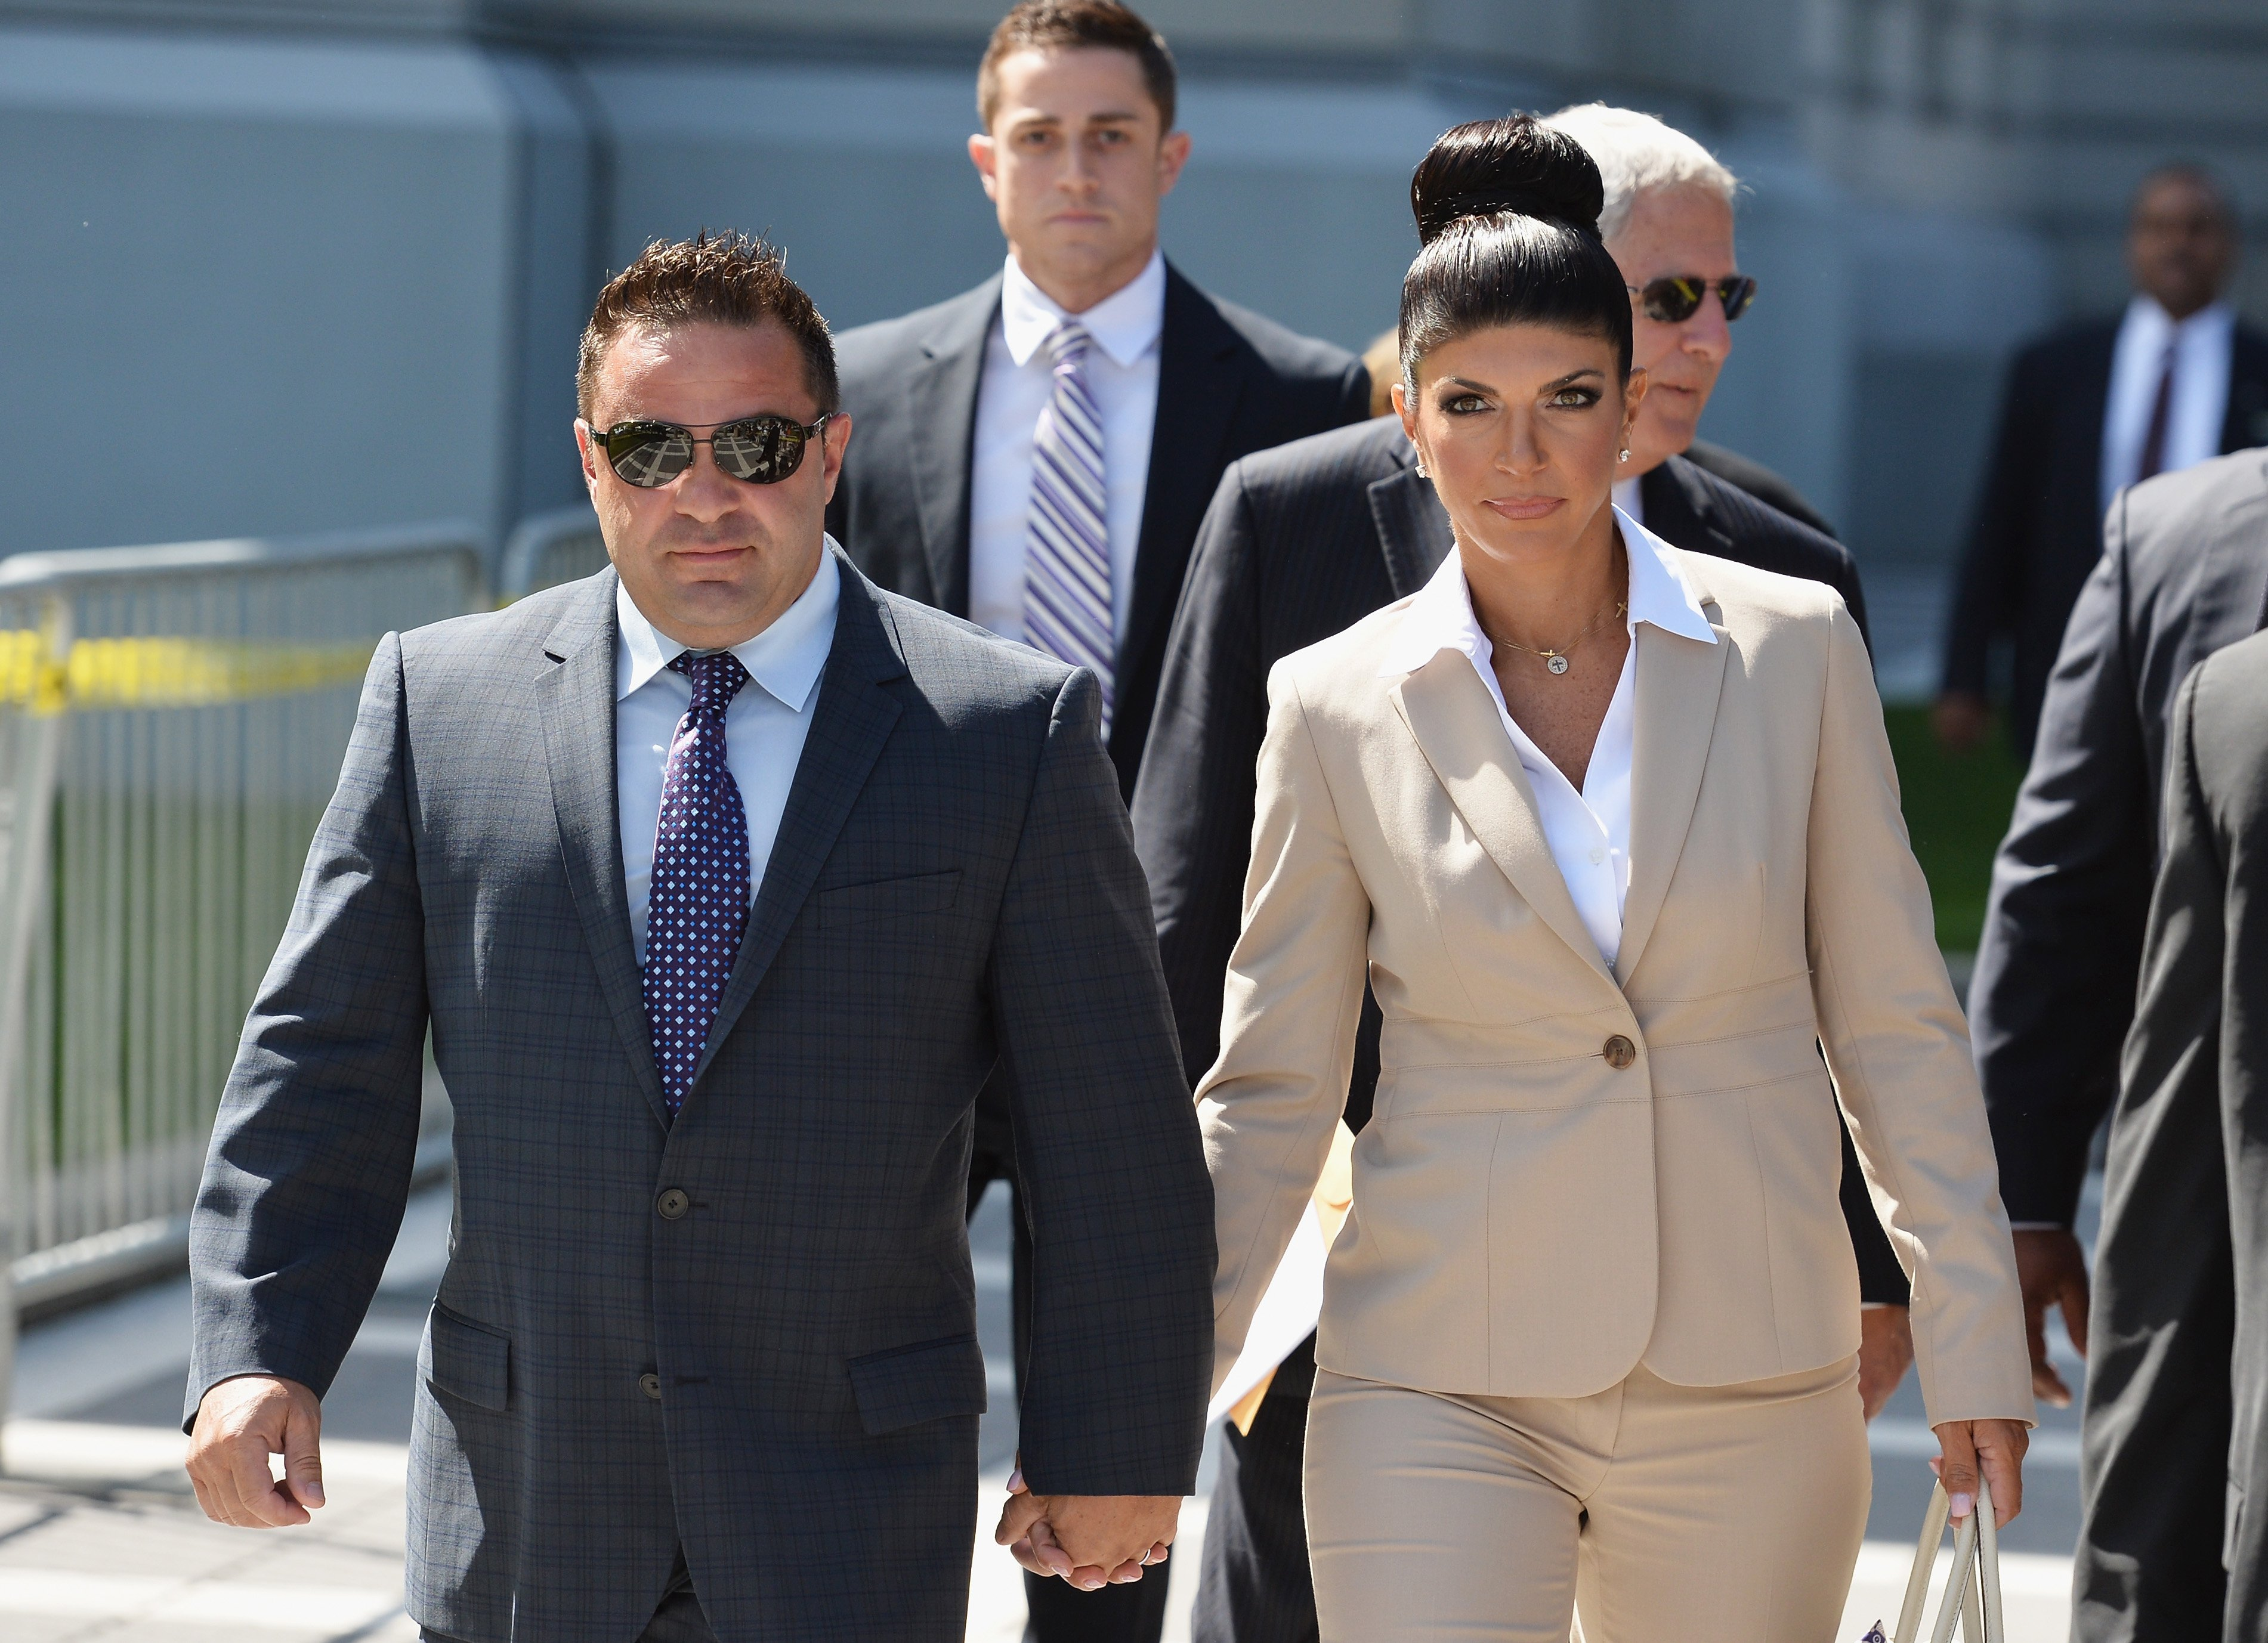 Joe Giudice & Teresa Giudice leave court after facing multiple charges of fraud on Aug. 14, 2013 in New Jersey | Photo: Getty Images